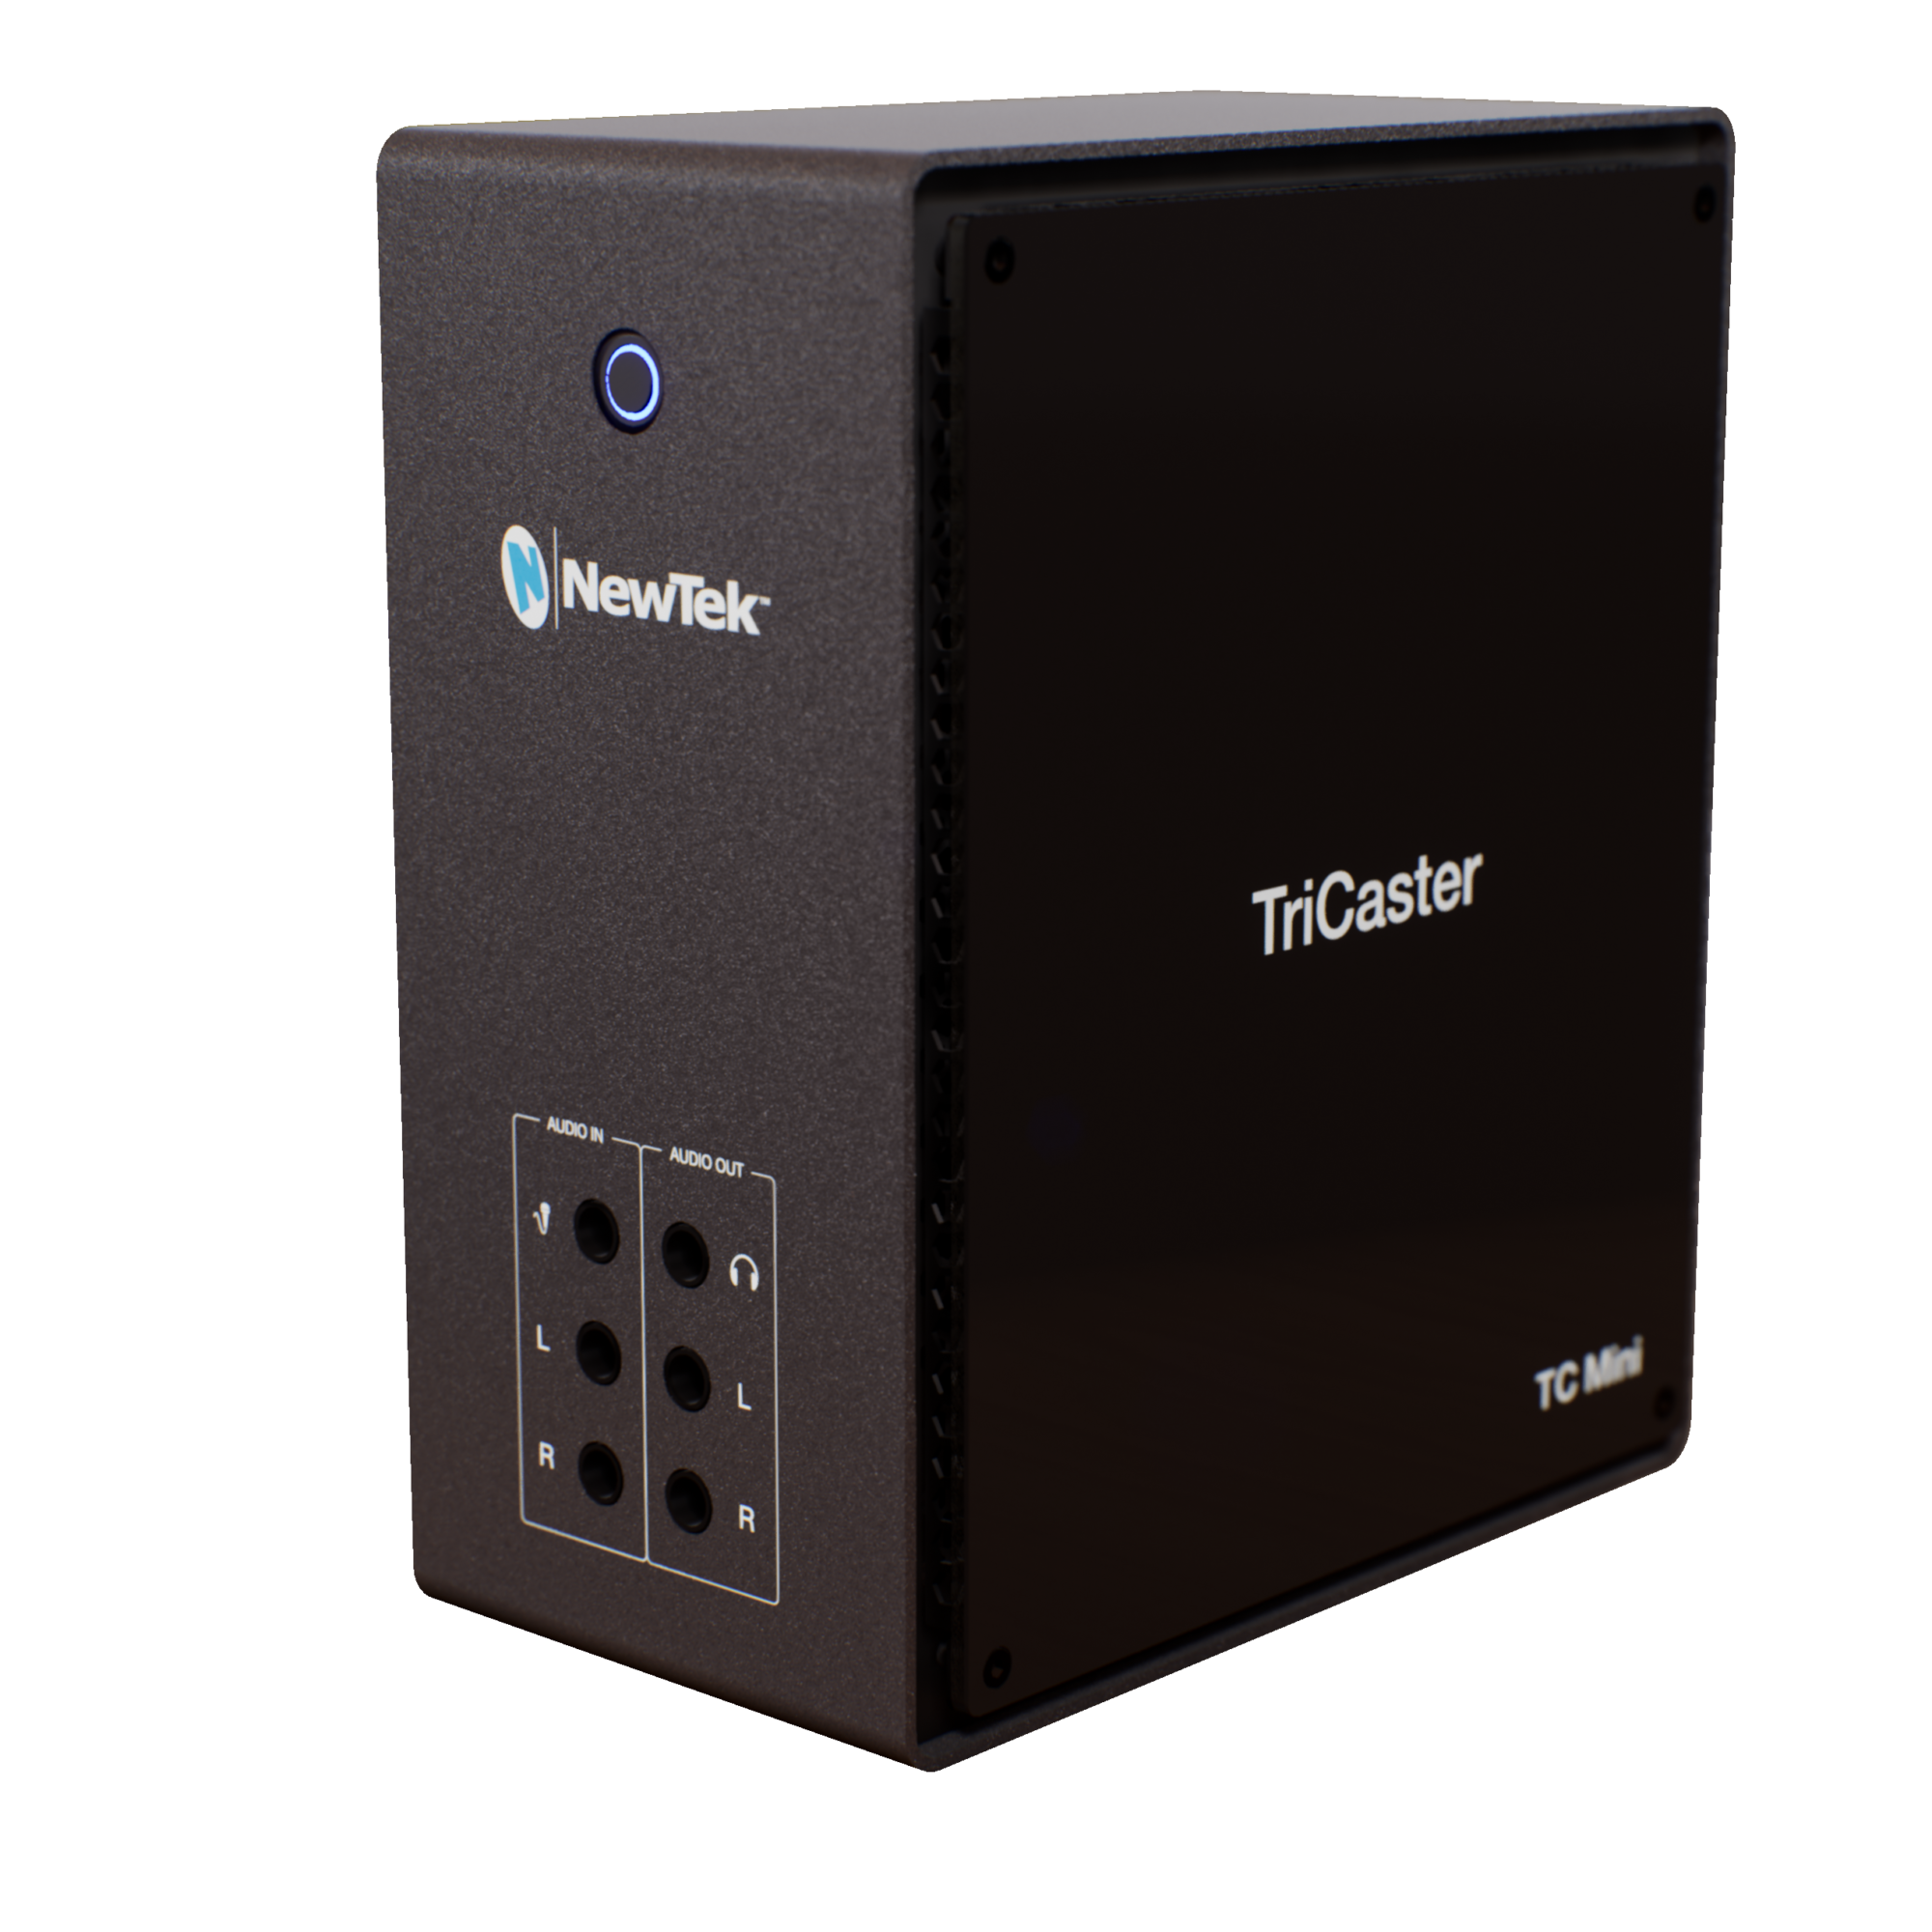 TriCaster Mini 4K|NDI NewTek CS Bundle